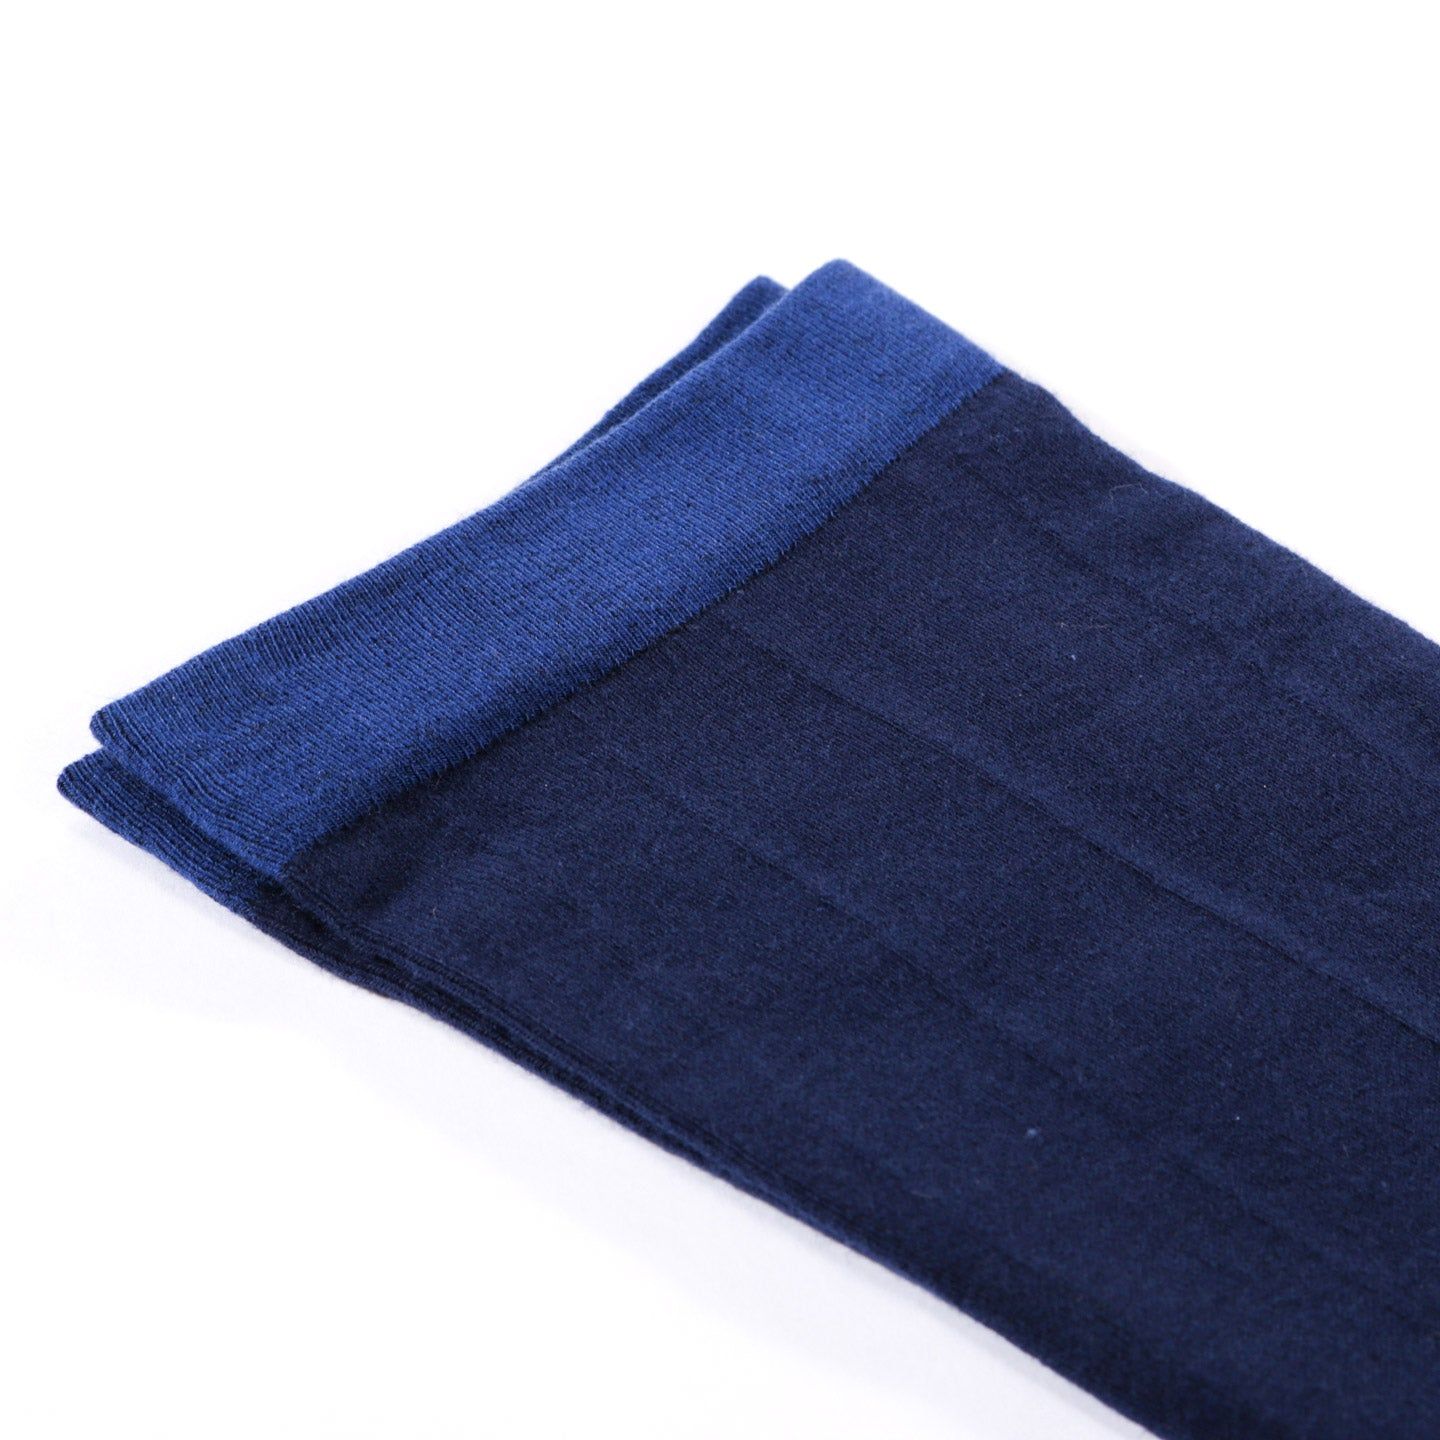 ROTOTO STRETCHLY CREW SOCKS NAVY